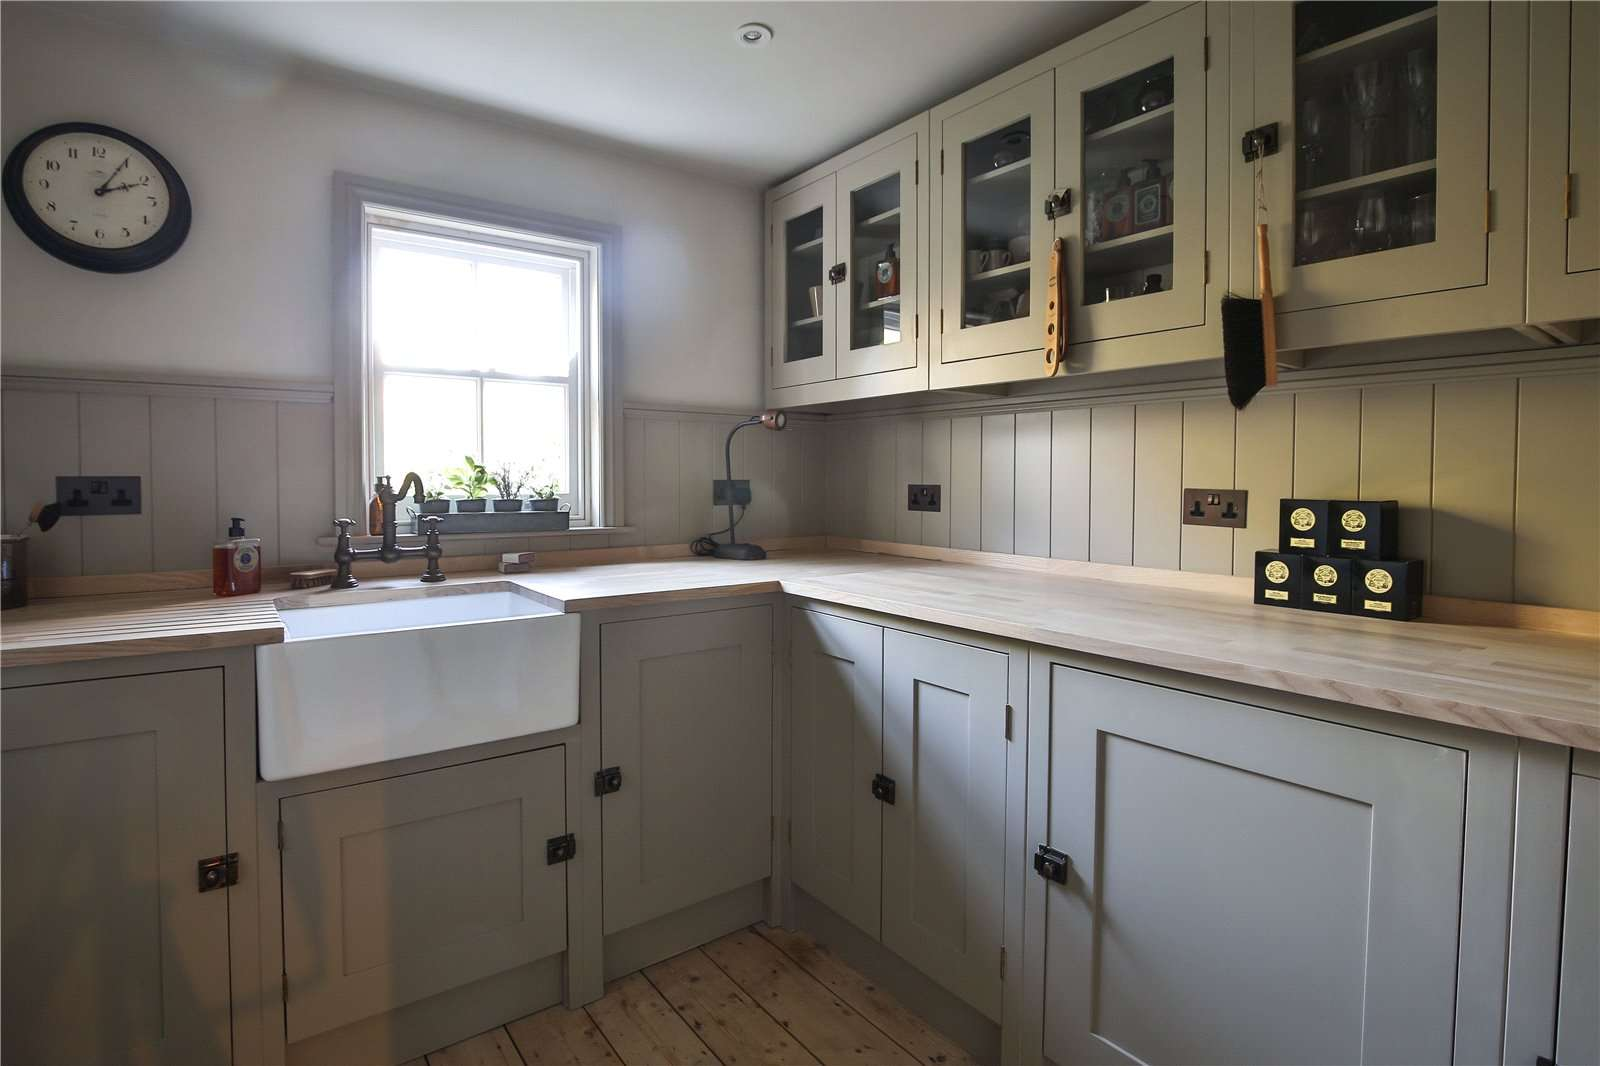 An elegantly-proportioned Victorian house on Woodstock Road in Oxford - Image Gallery 13 - Utility Room